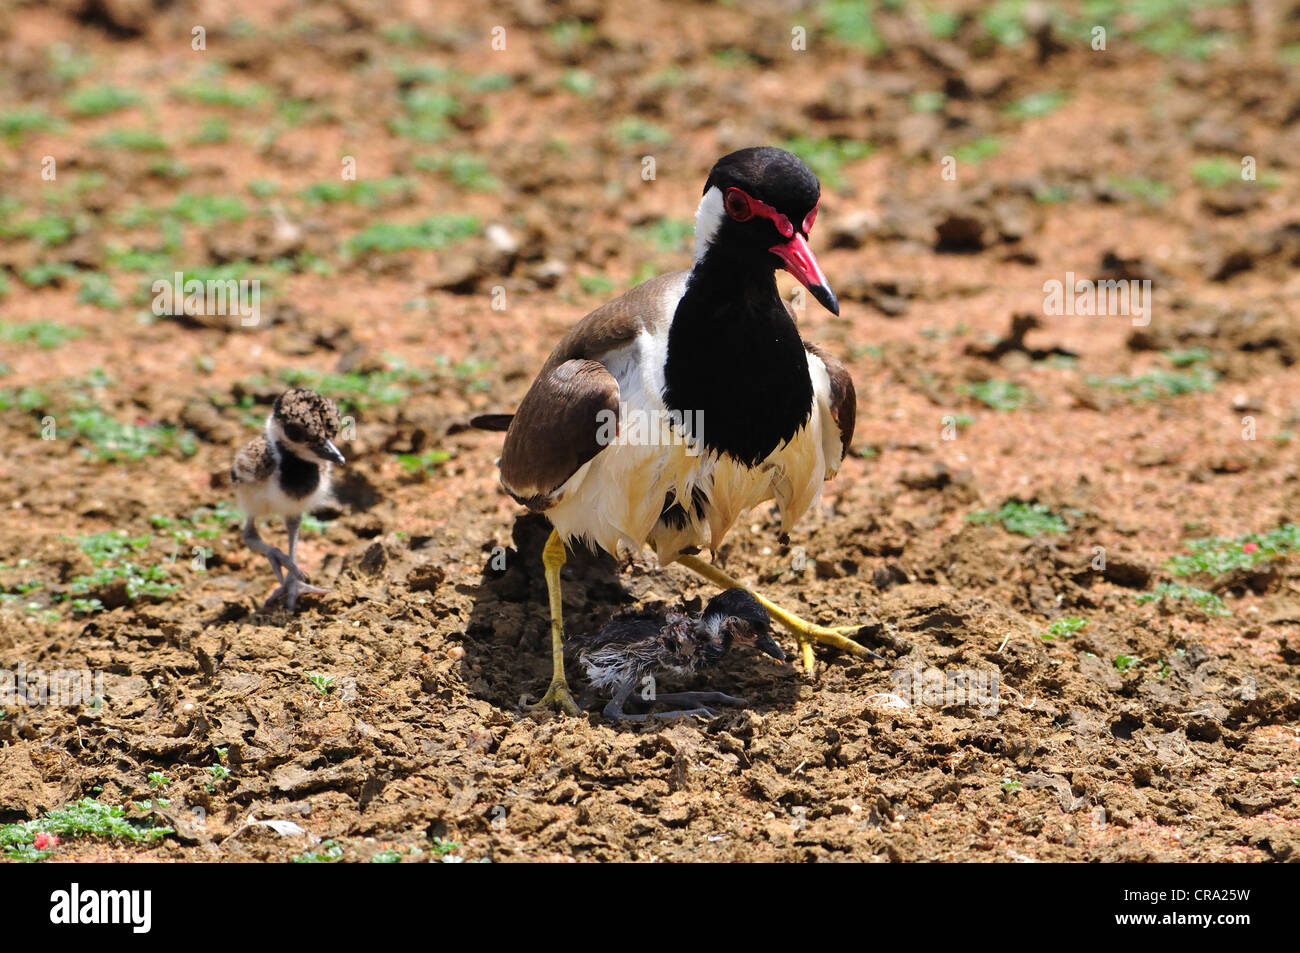 RedWattled Lapwing of  South India - Stock Image